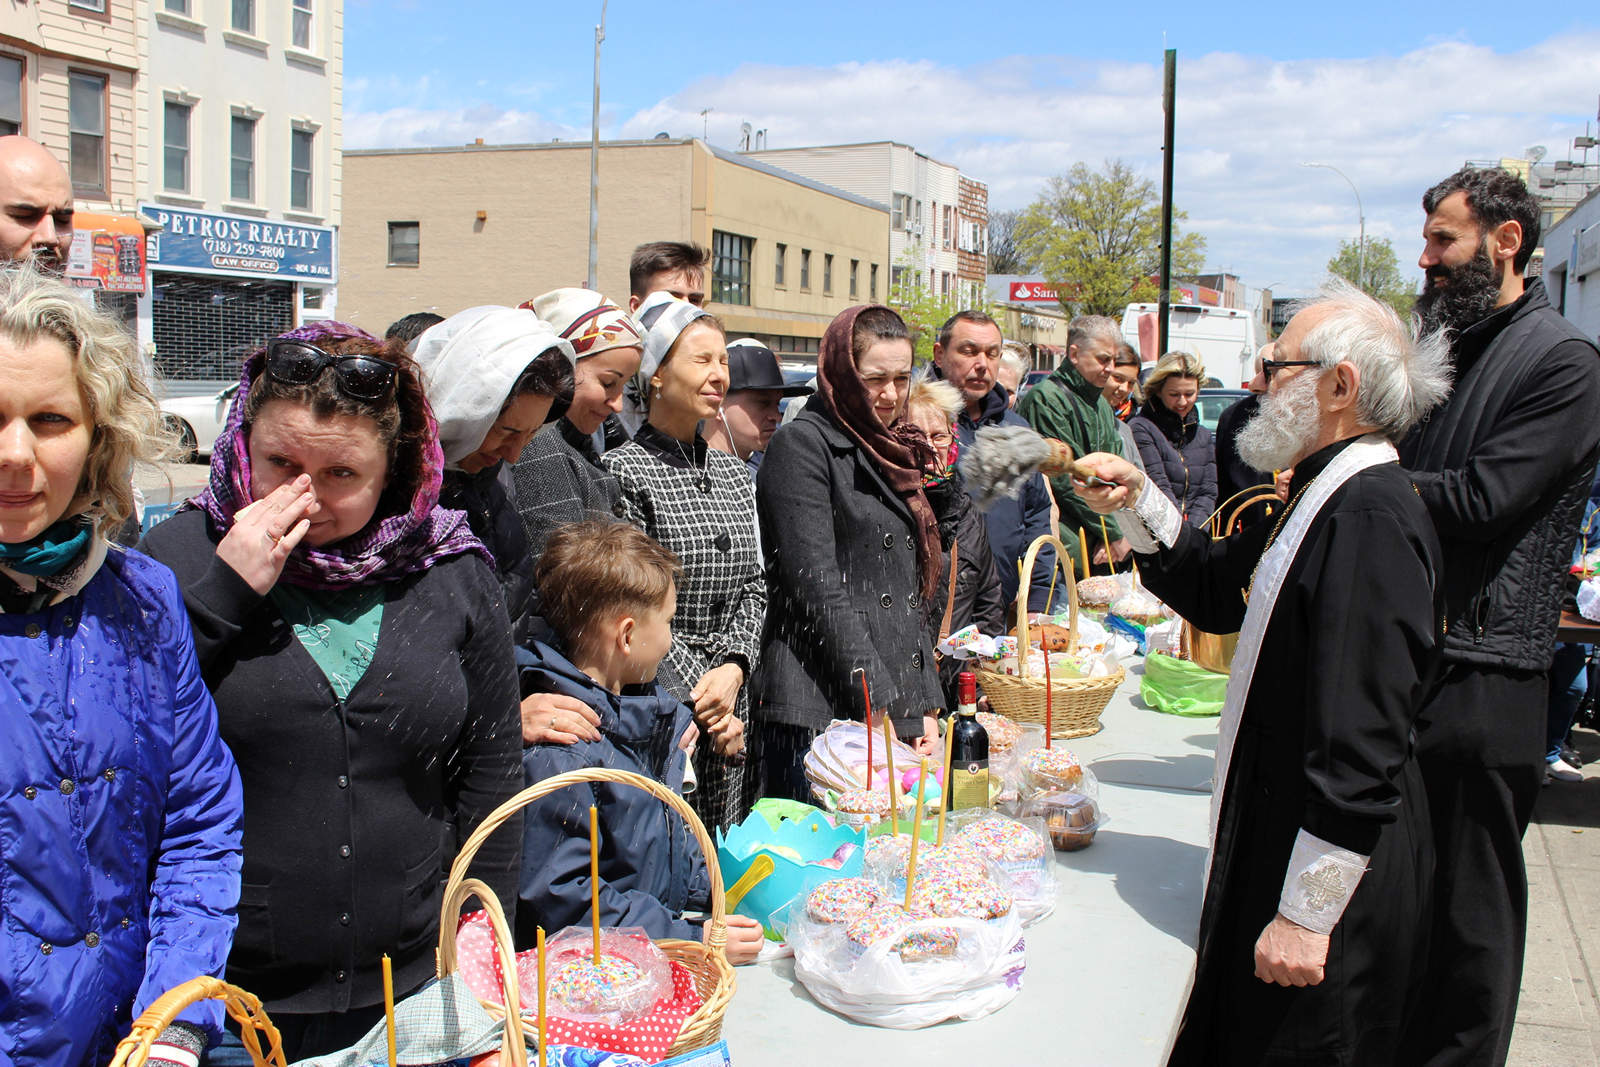 Hristos-Voskres_Brooklyn_28-04-2019_06